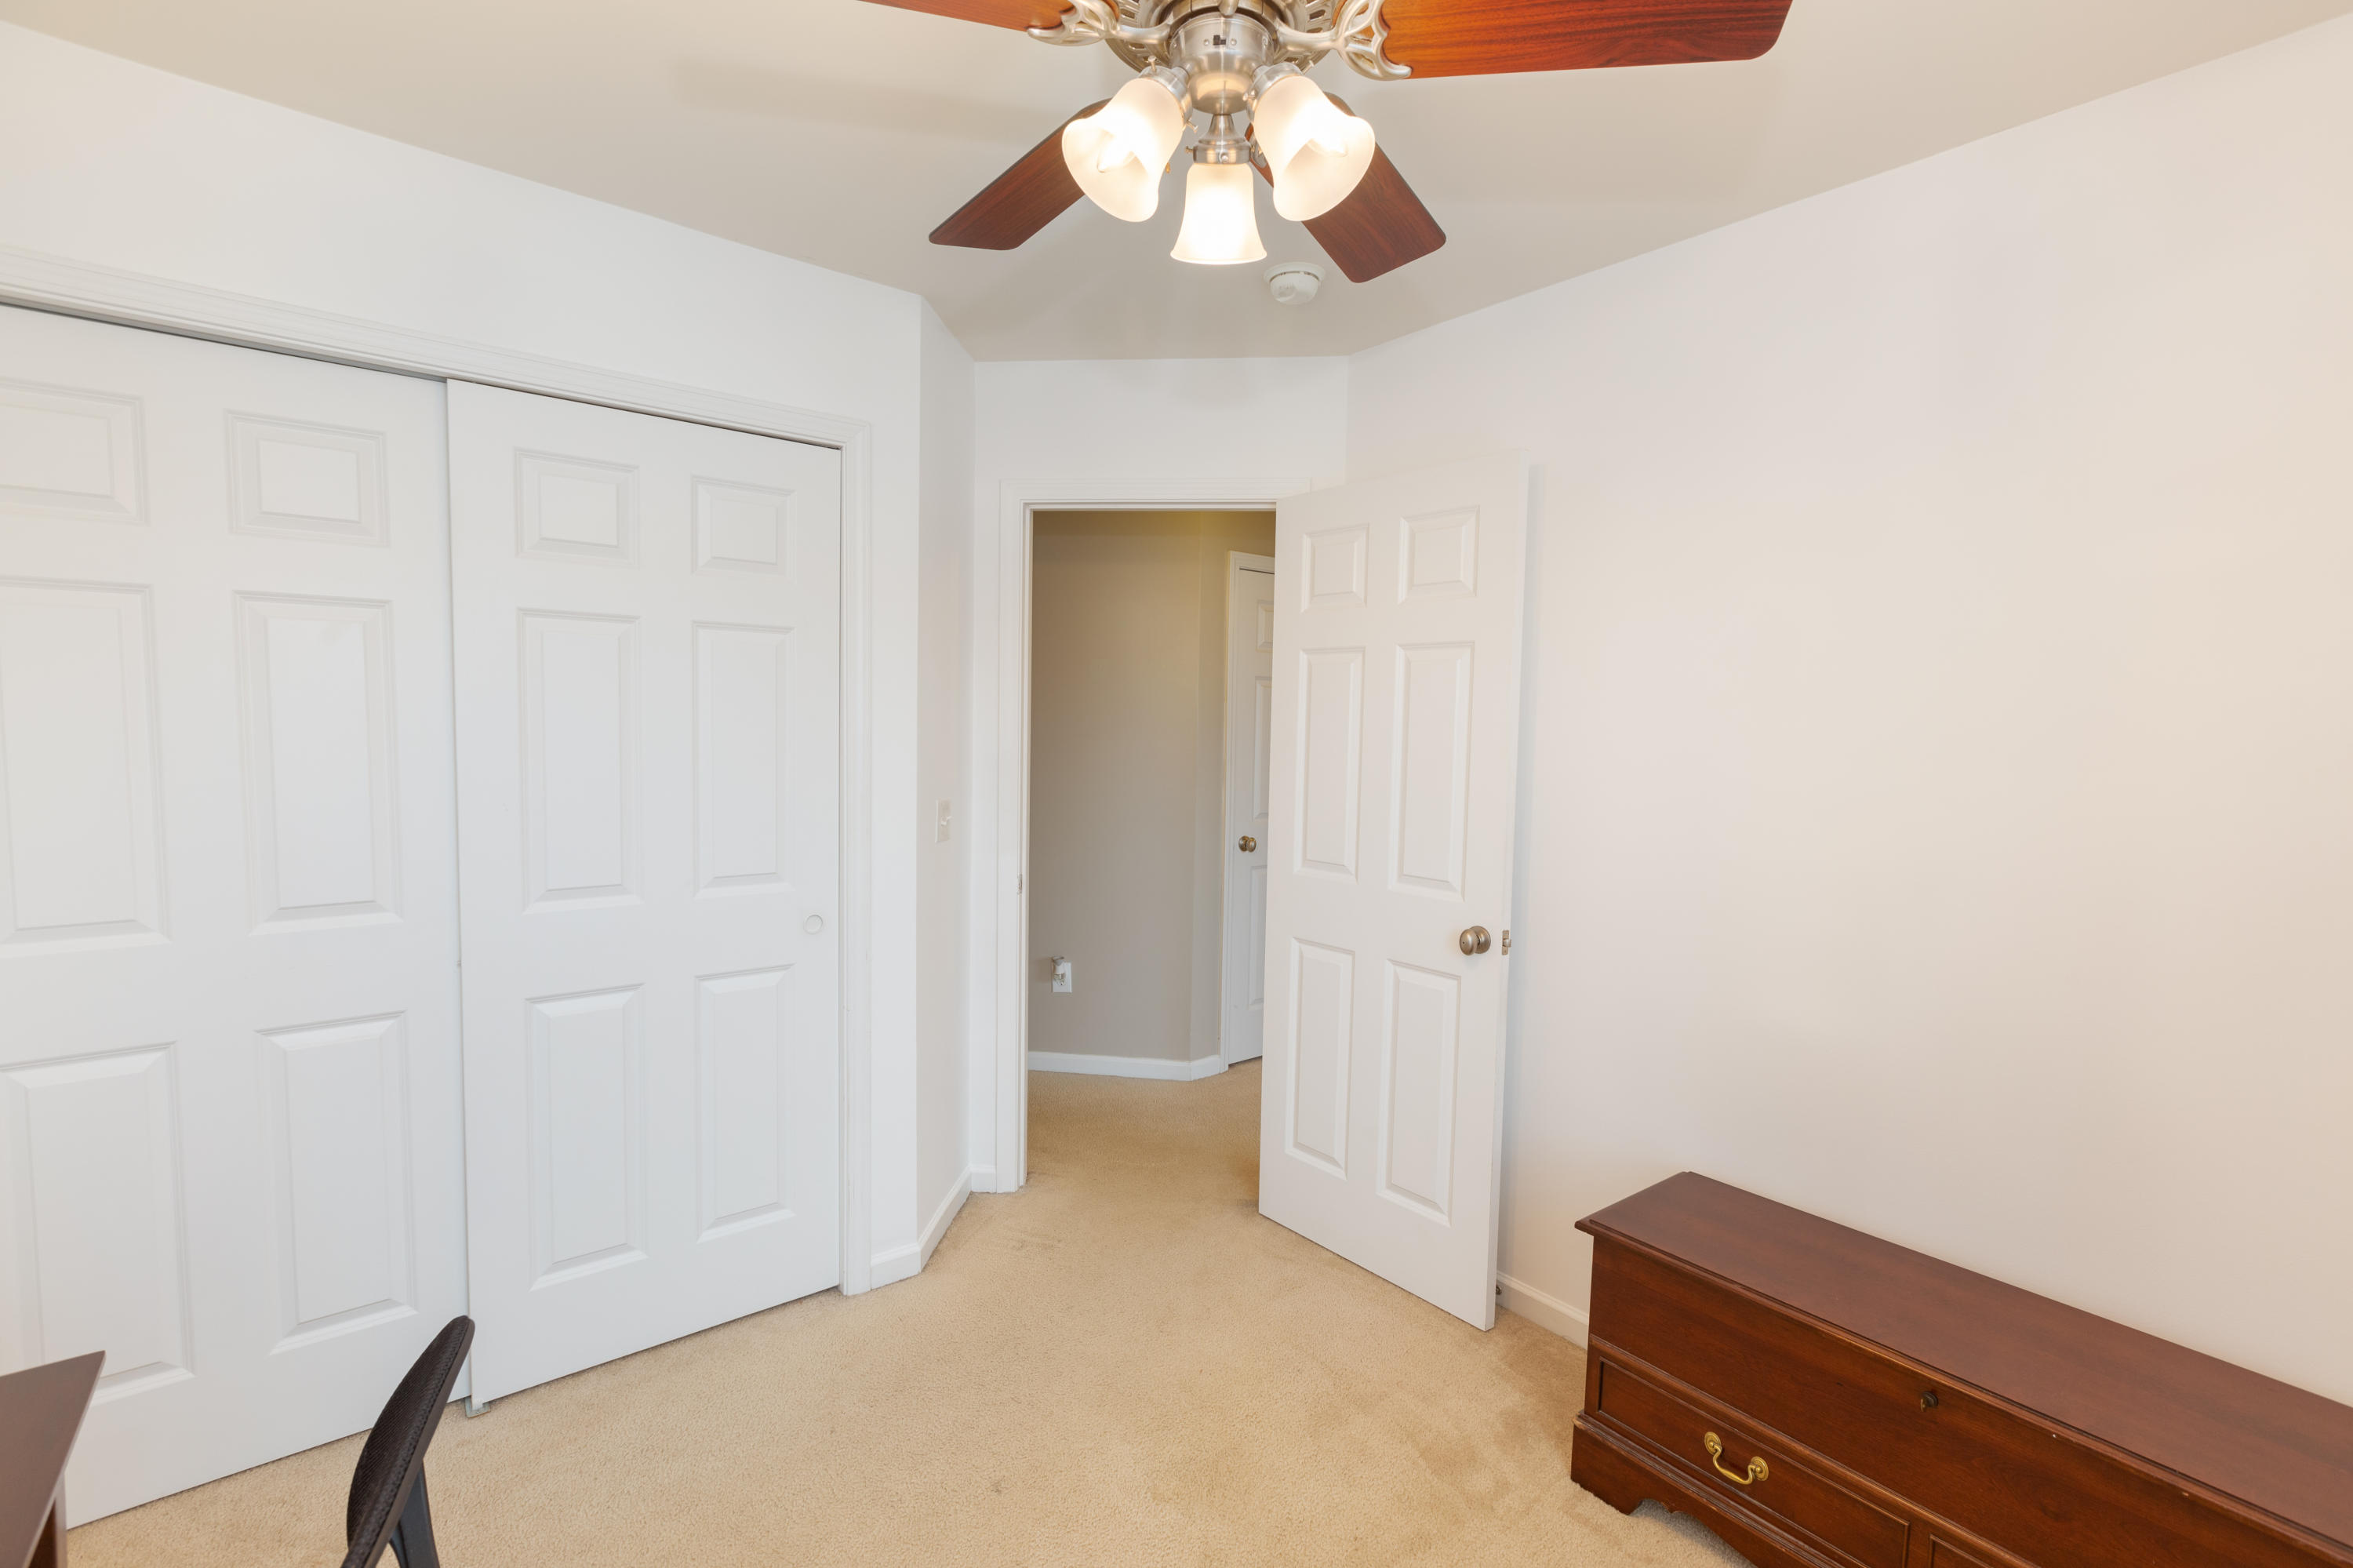 Berkeley Commons Townhomes Homes For Sale - 113 Lamplighter, Summerville, SC - 13